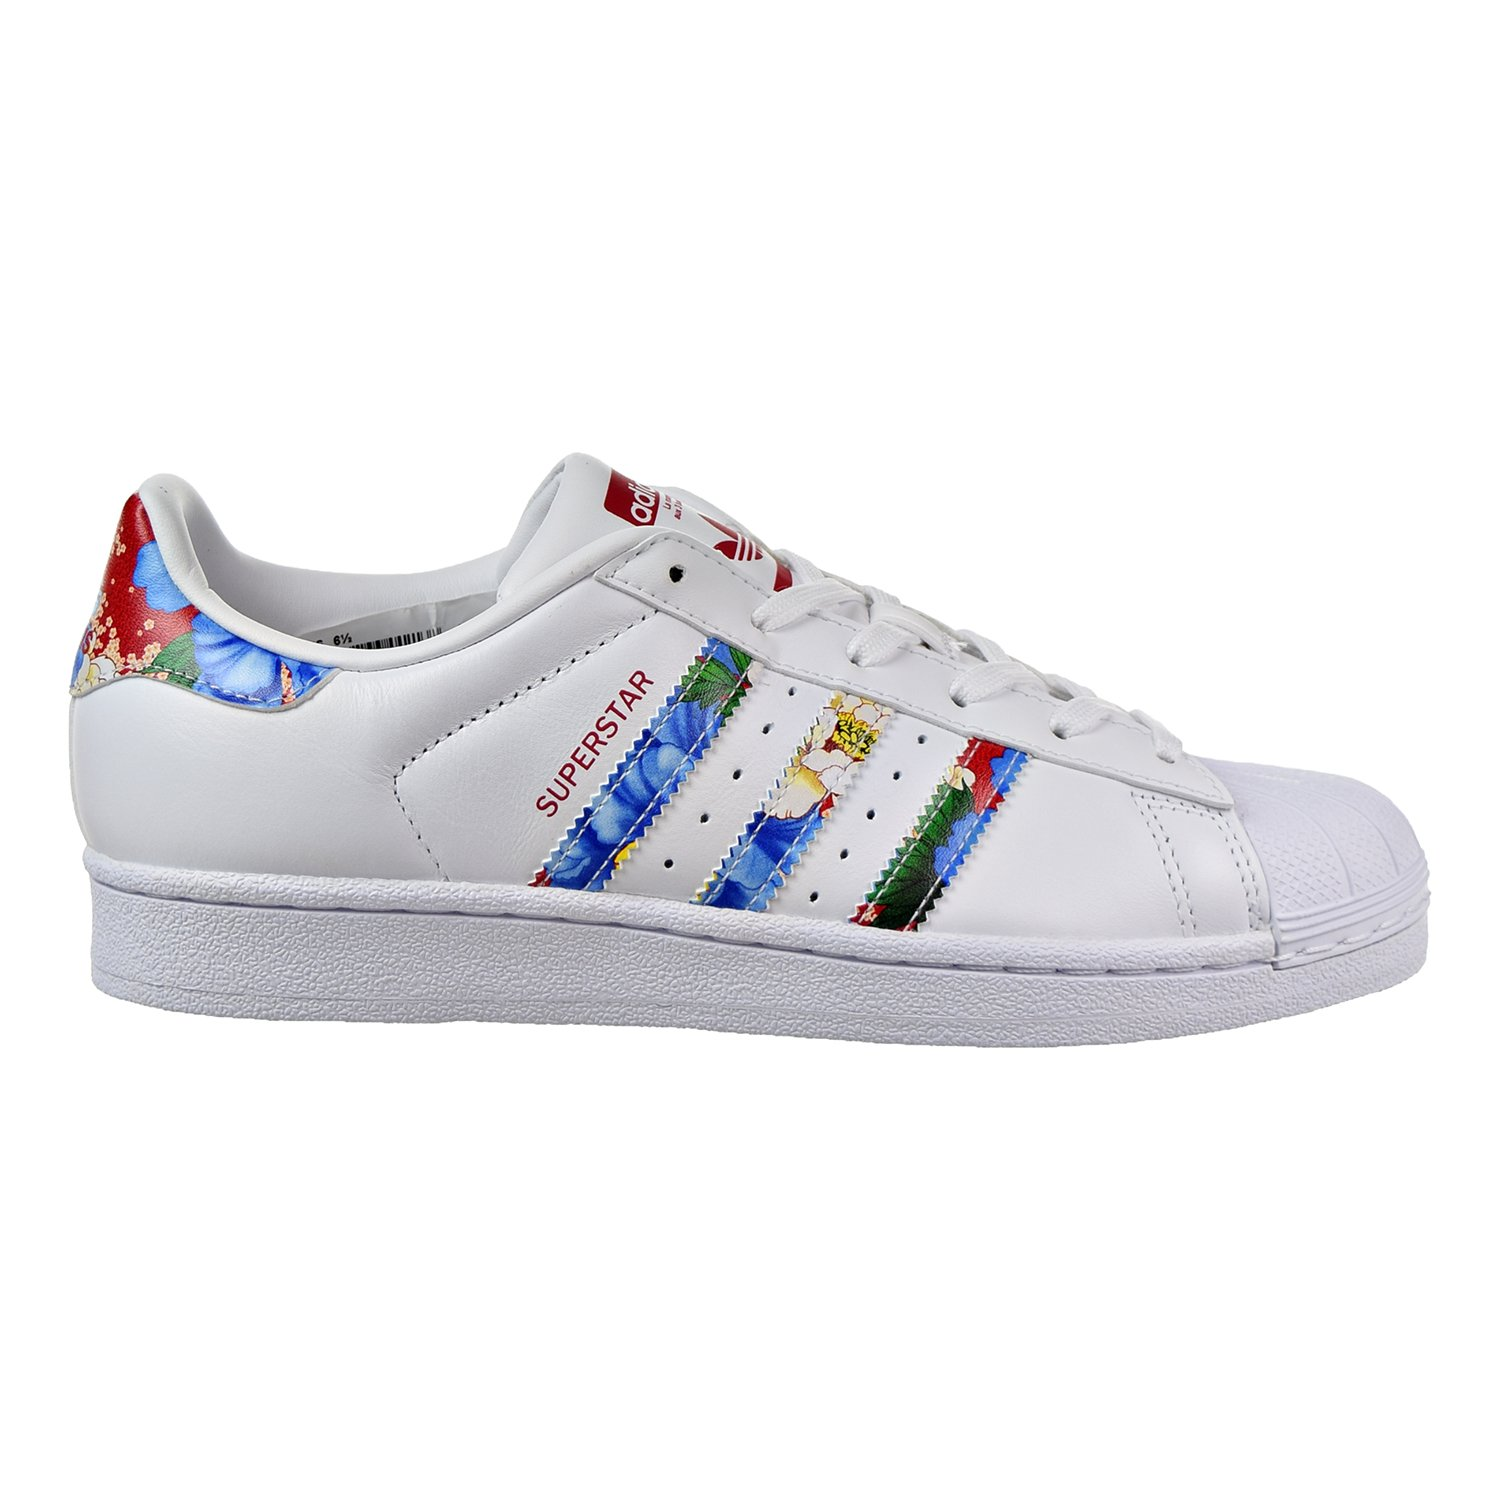 Adidas Women's Superstar White/Red/Multi Color Fashion Sneakers (6.5)